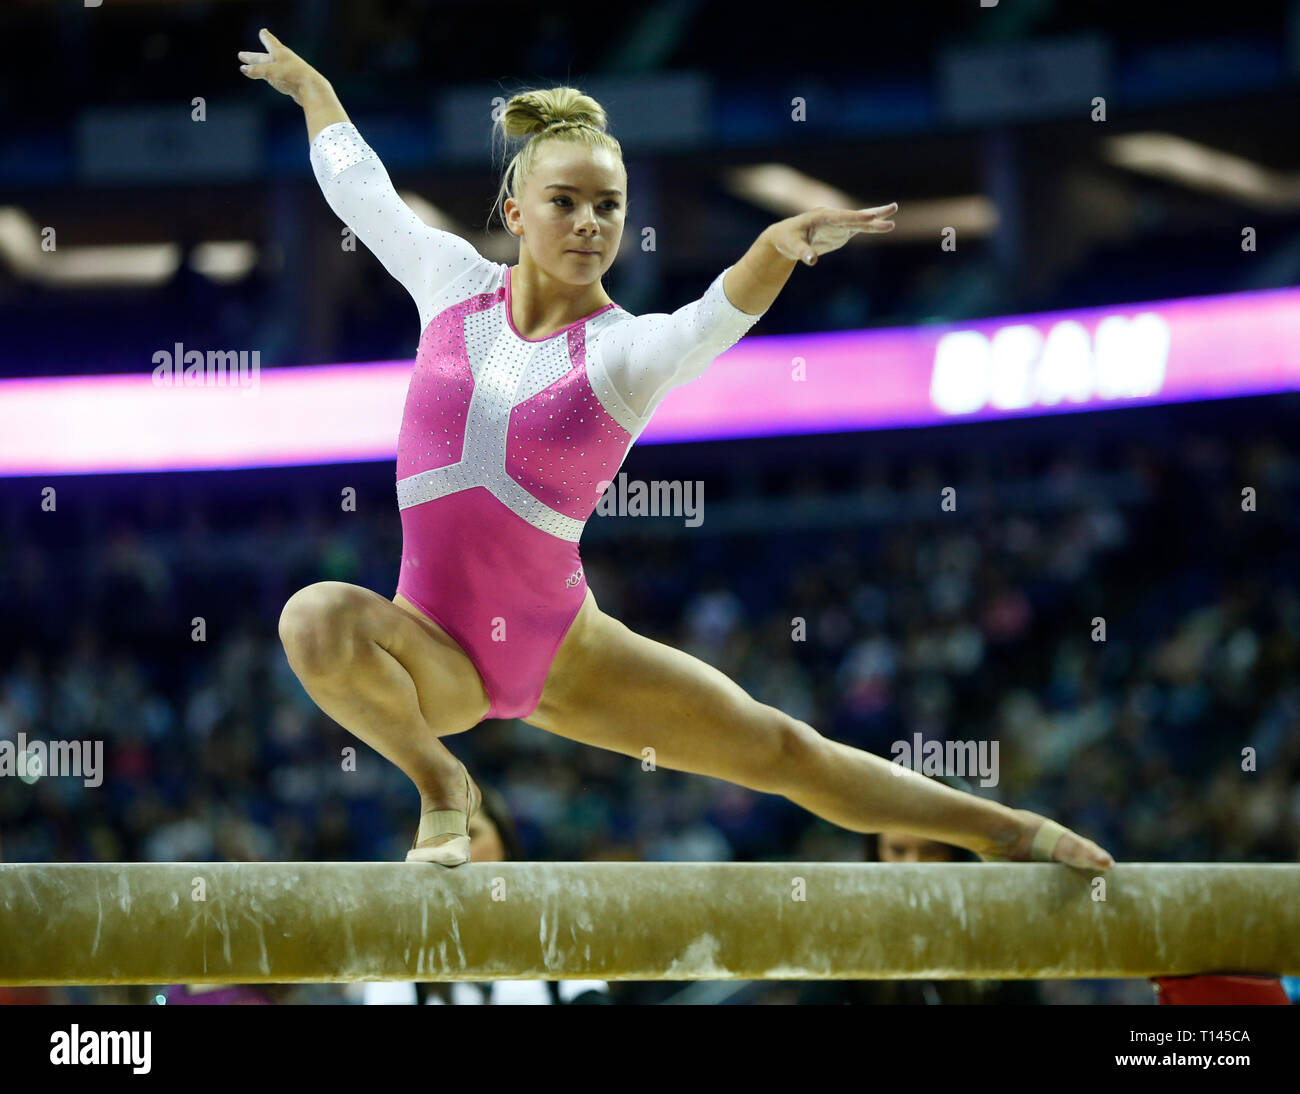 London, UK. 23rd Mar, 2019. London, 23 March, 2019 Halle Hilton of Great Britain on the Women's Beam during The Superstars of Gymnastics at 02 Areana, London, England on 23 Mar 2019. Credit: Action Foto Sport/Alamy Live News Stock Photo